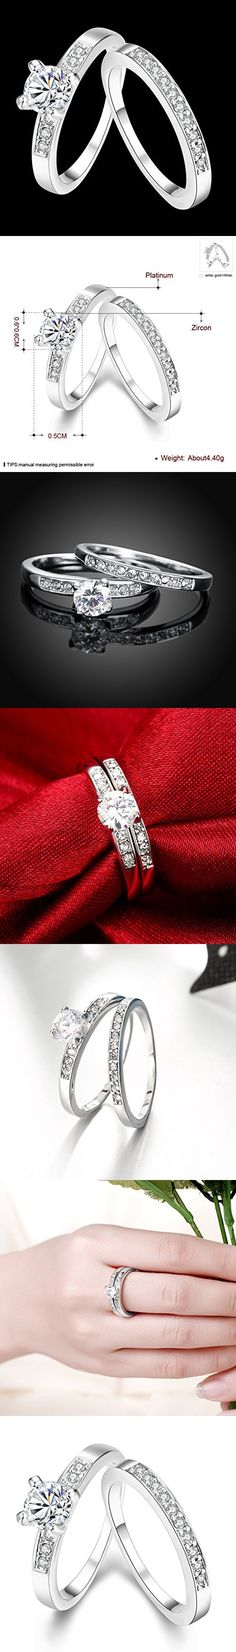 [Eternity Love] Women's Pretty 18K White Gold Plated Solitaire CZ Crystal Engagement Rings Set Best Promise Rings for Her Anniversary Wedding Bands TIVANI Collection Jewelry Rings